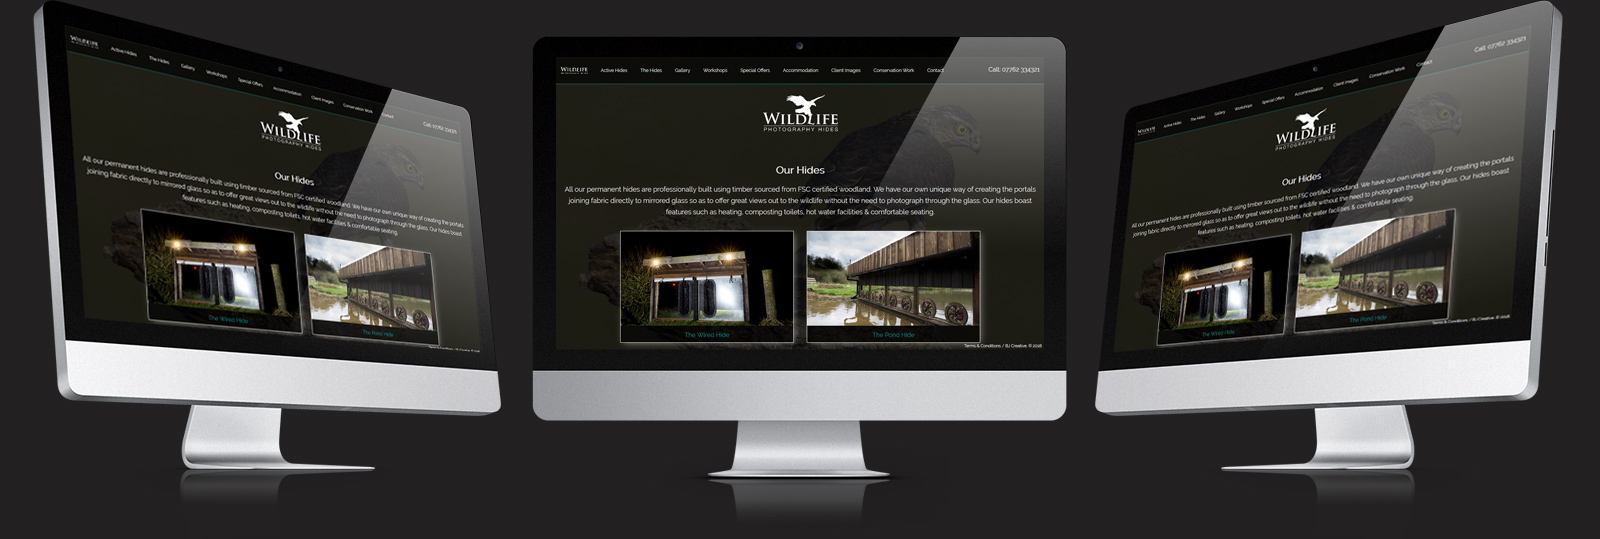 Stamford Web Design - Wildlife Photo Hides